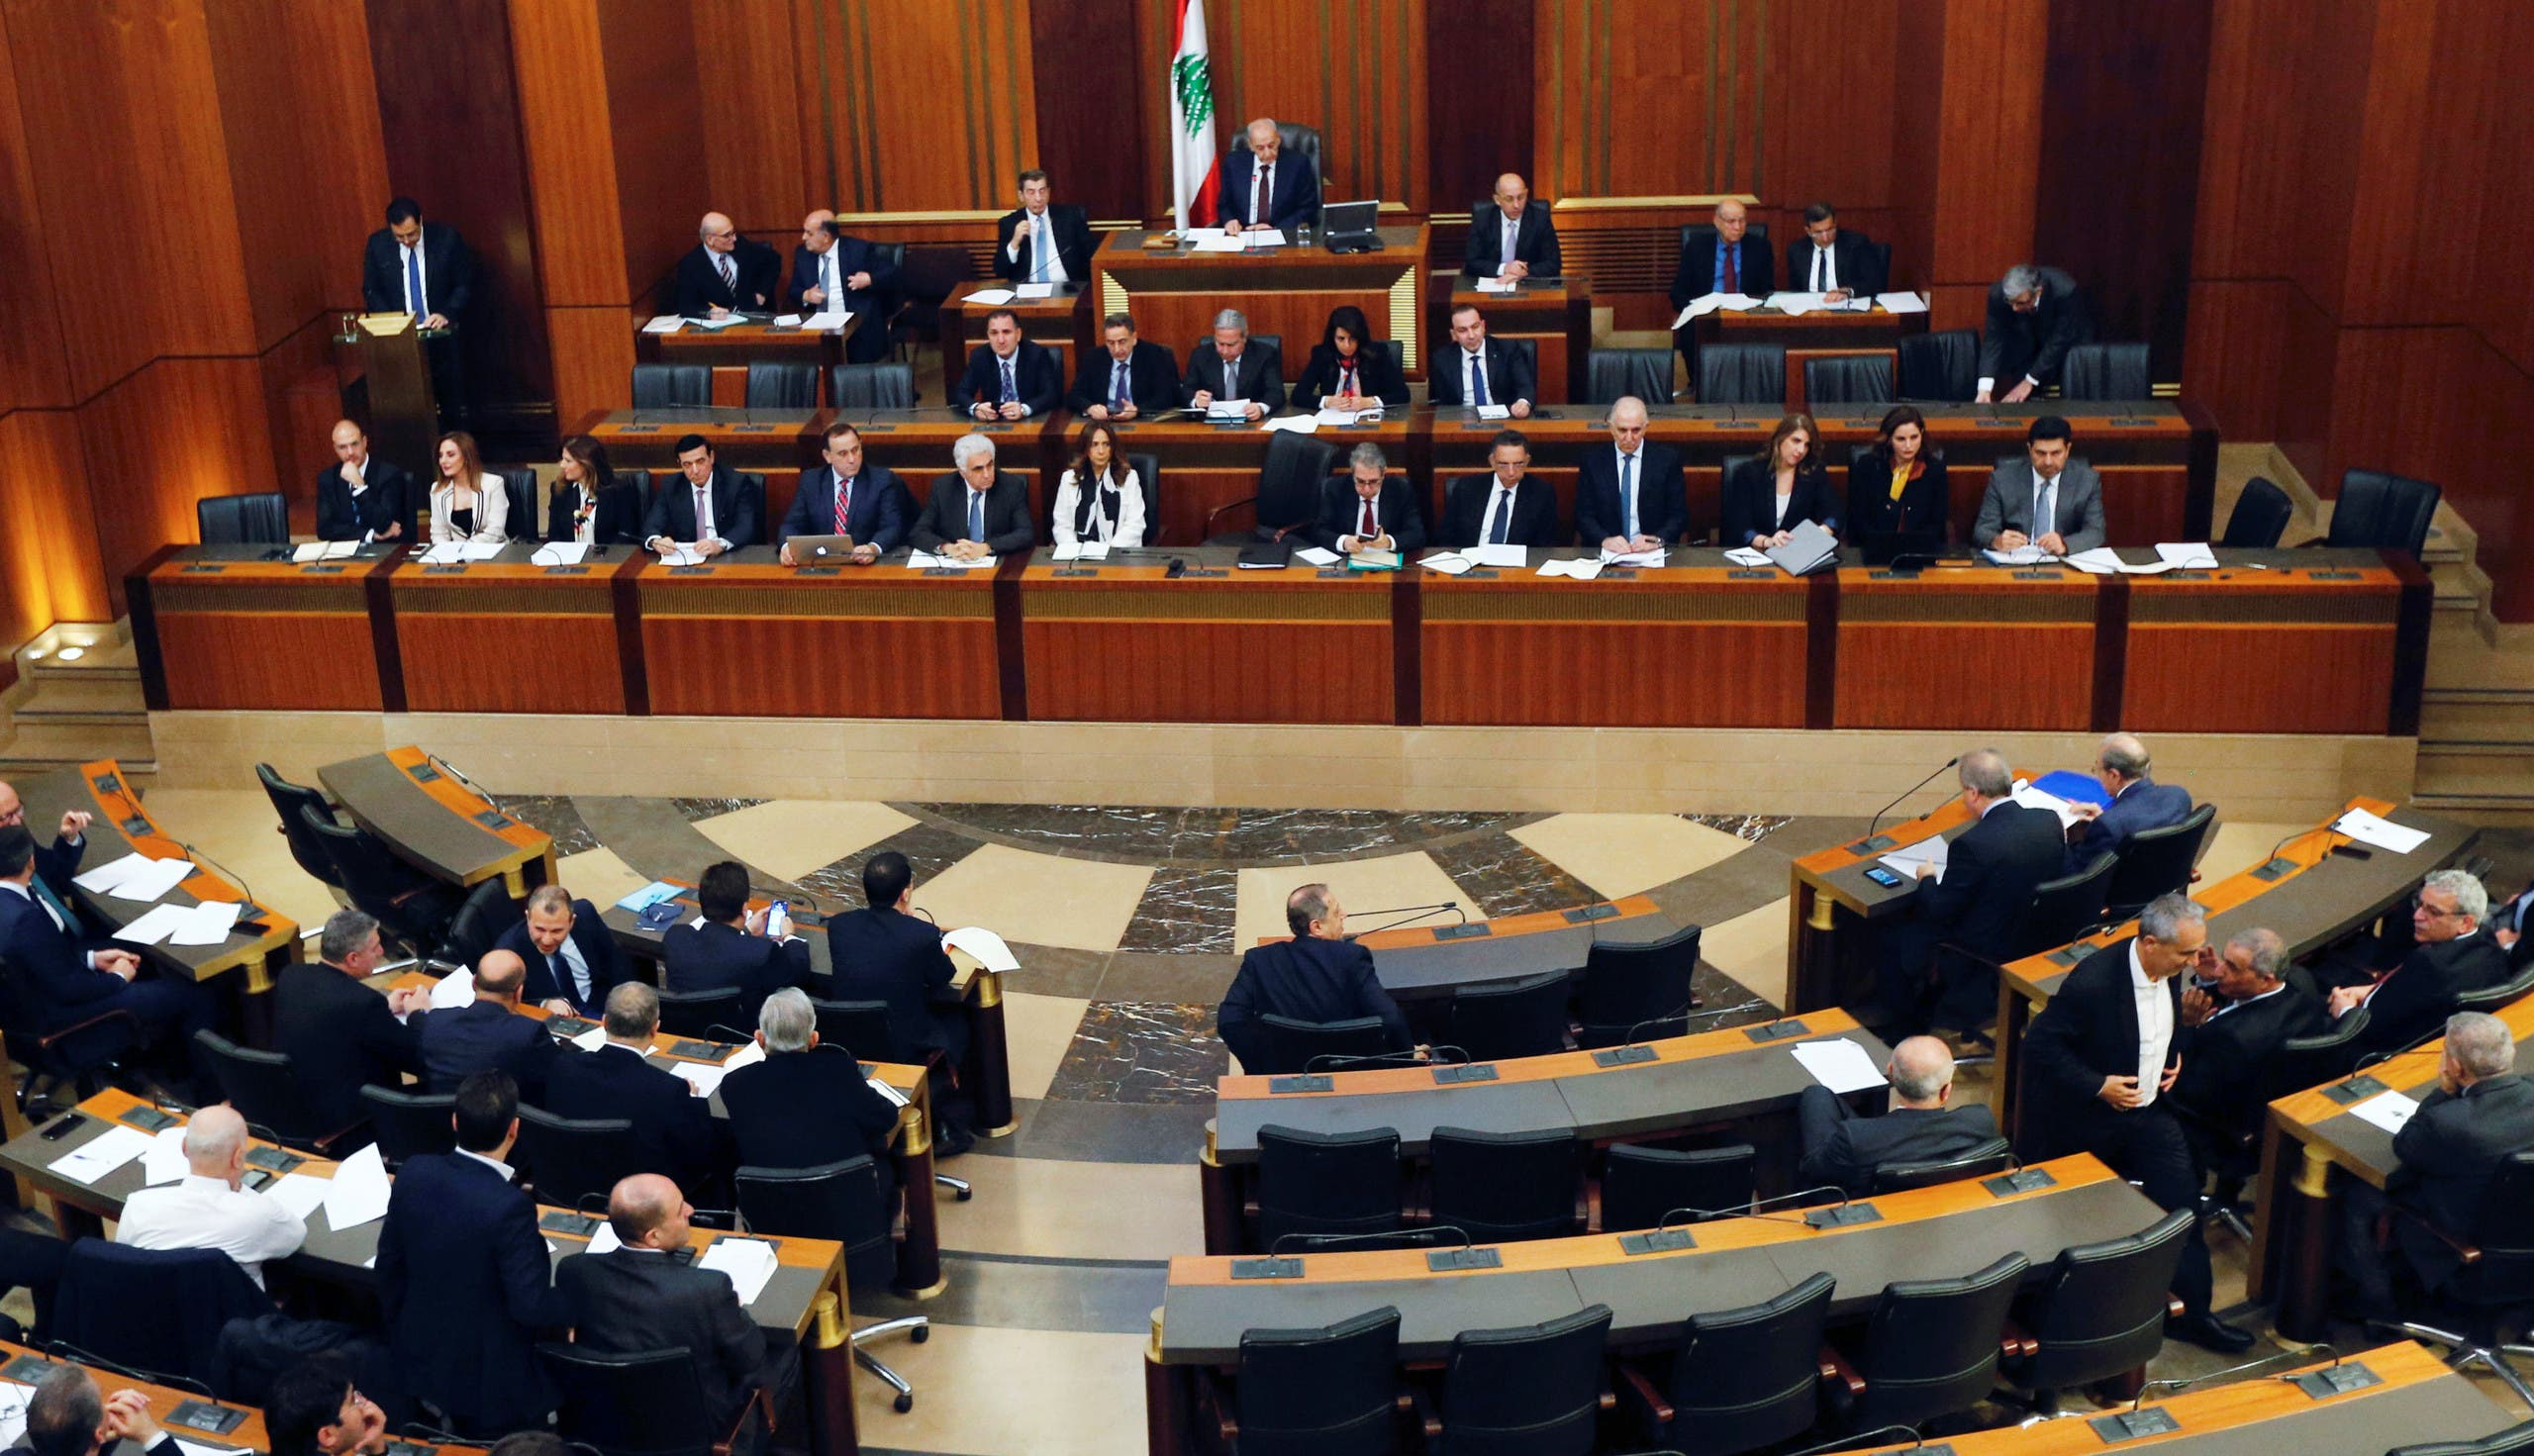 Lebanese Prime Minister Hassan Diab, presents his government's policy statement to parliament during a session for a vote of confidence in Beirut, Lebanon February 11, 2020. (Reuters)